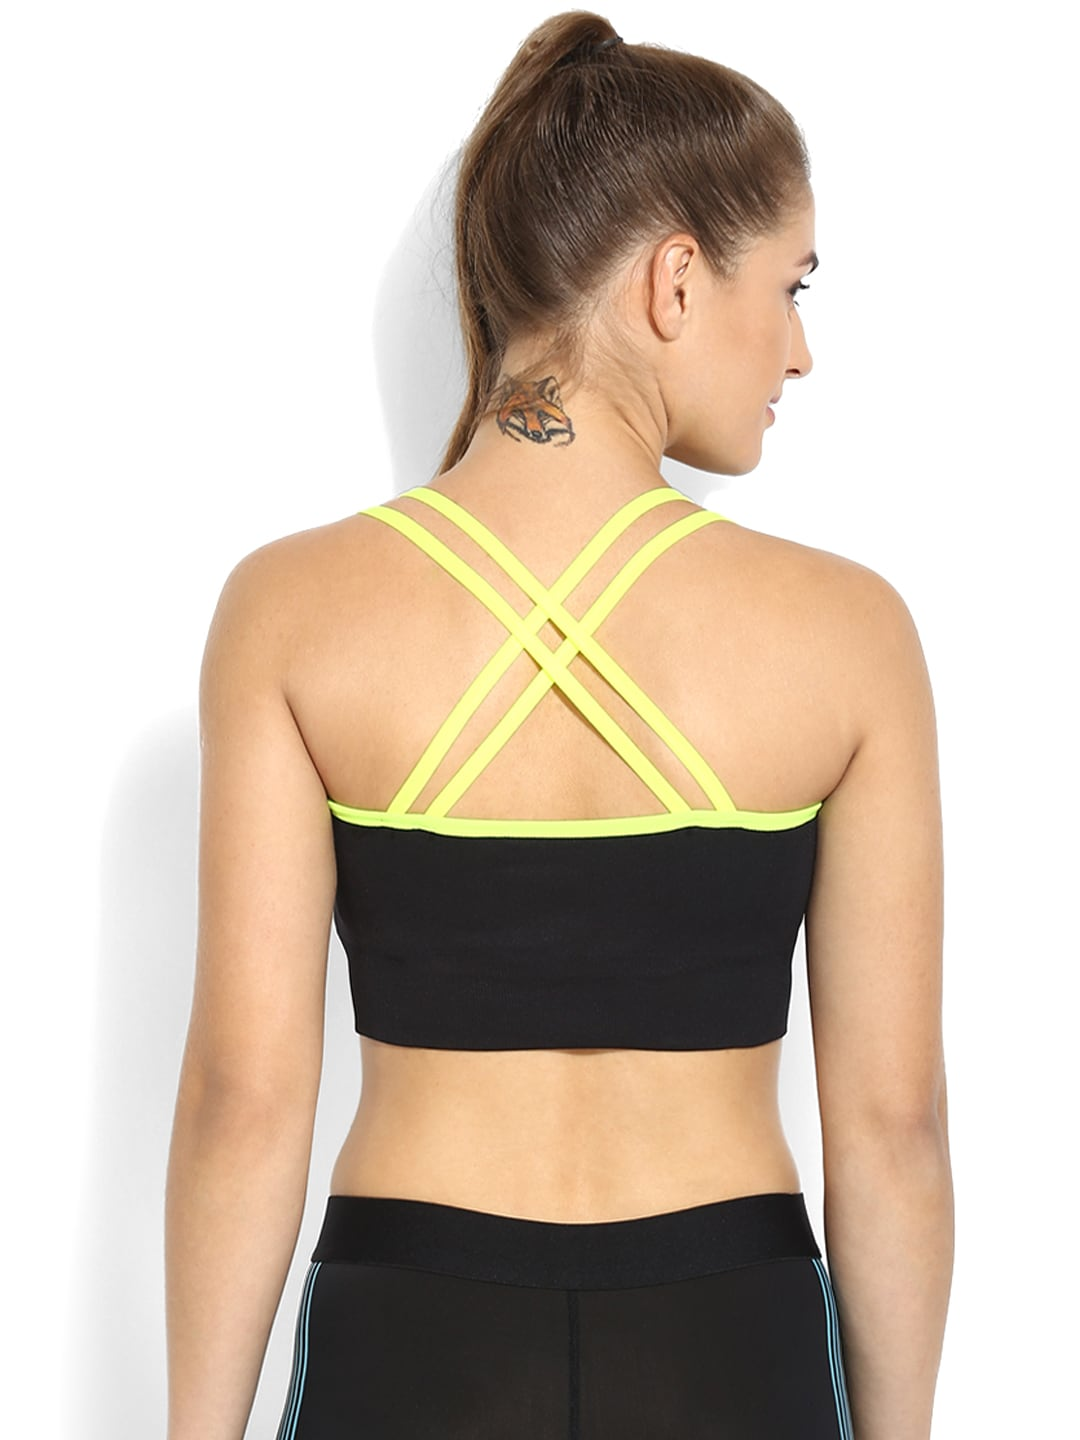 Da Intimo Black Solid Non-Wired Full Coverage Lightly Padded Sports Bra DIX-41 image